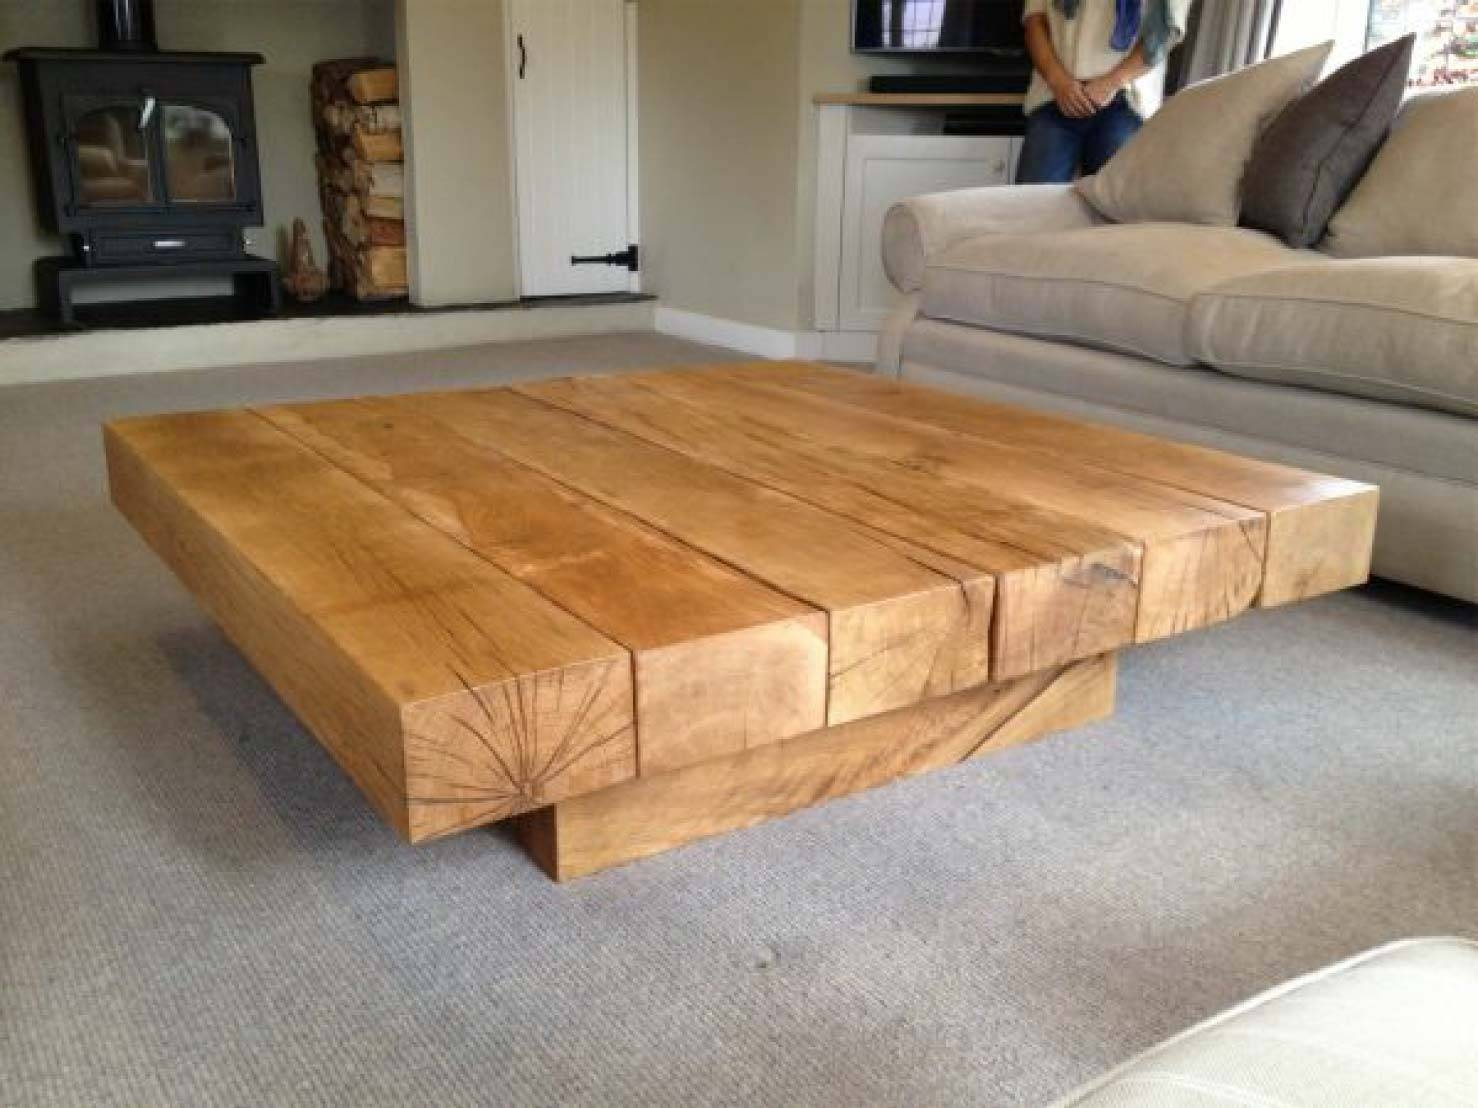 Square Oak Coffee Table Project #59 | Abacus Tables with Square Coffee Table Oak (Image 14 of 15)